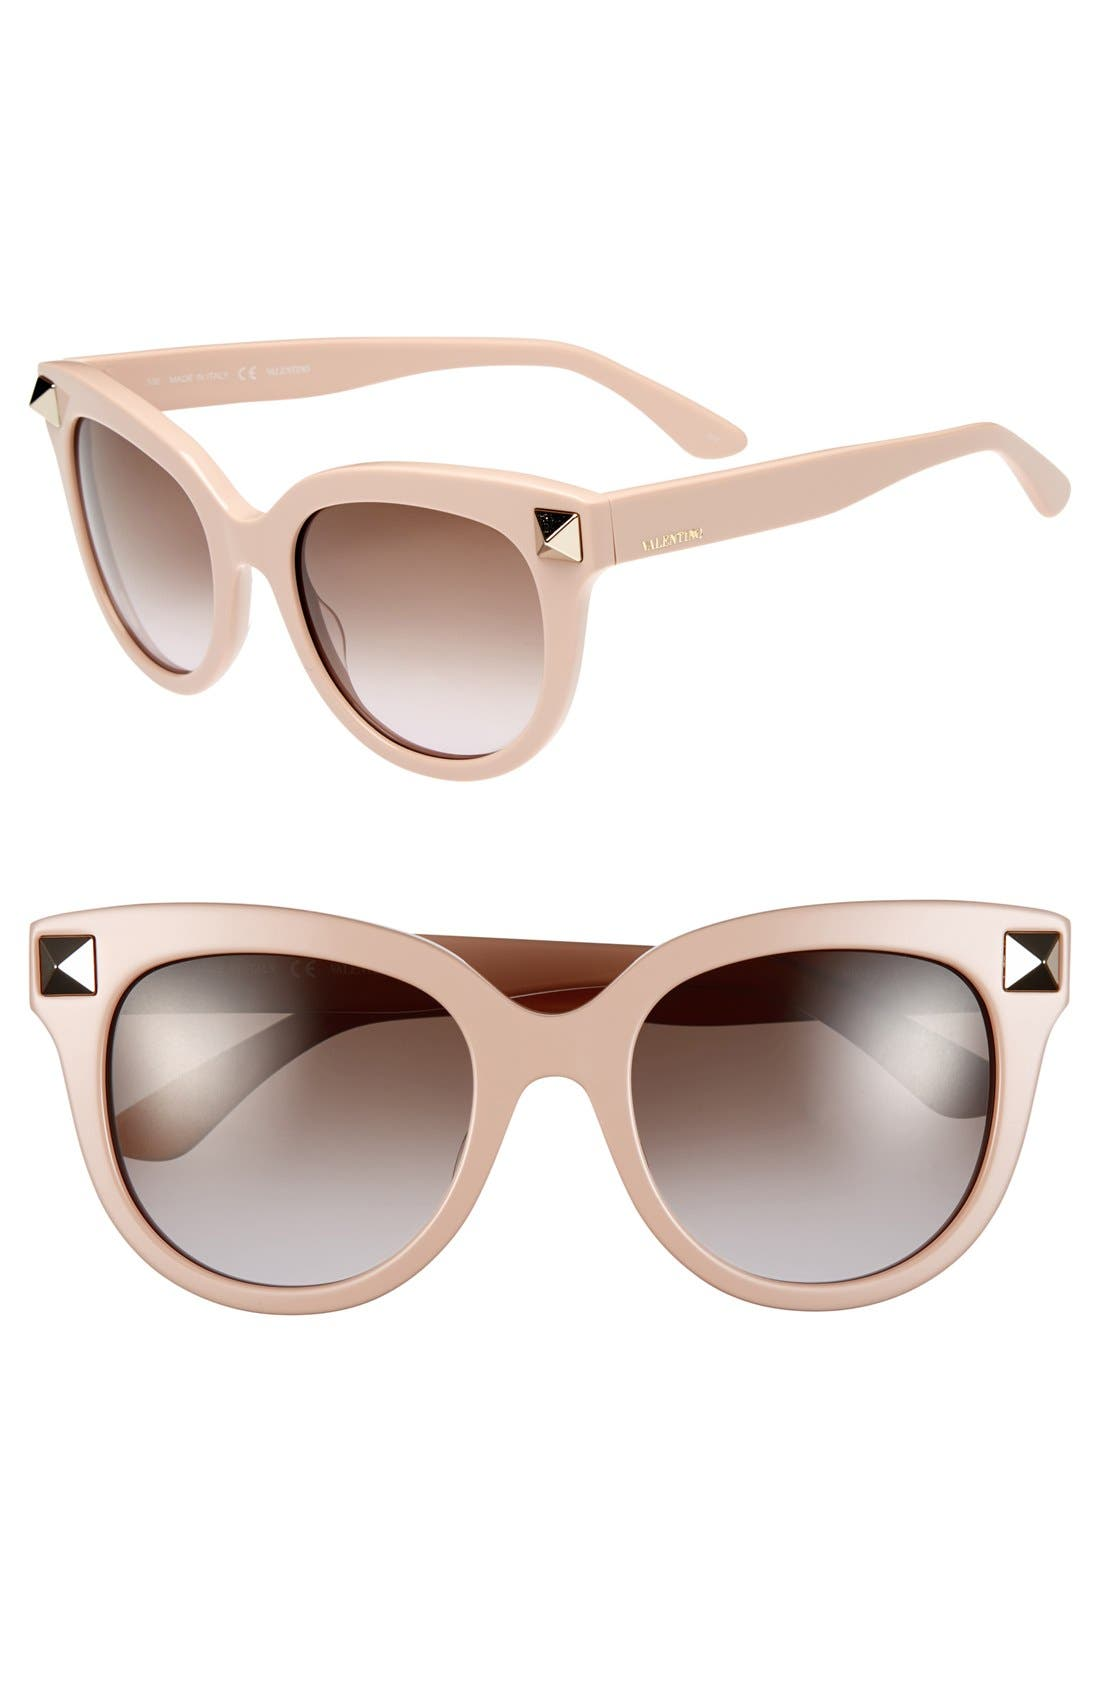 Alternate Image 1 Selected - Valentino 'Rockstud' 52mm Studded Sunglasses